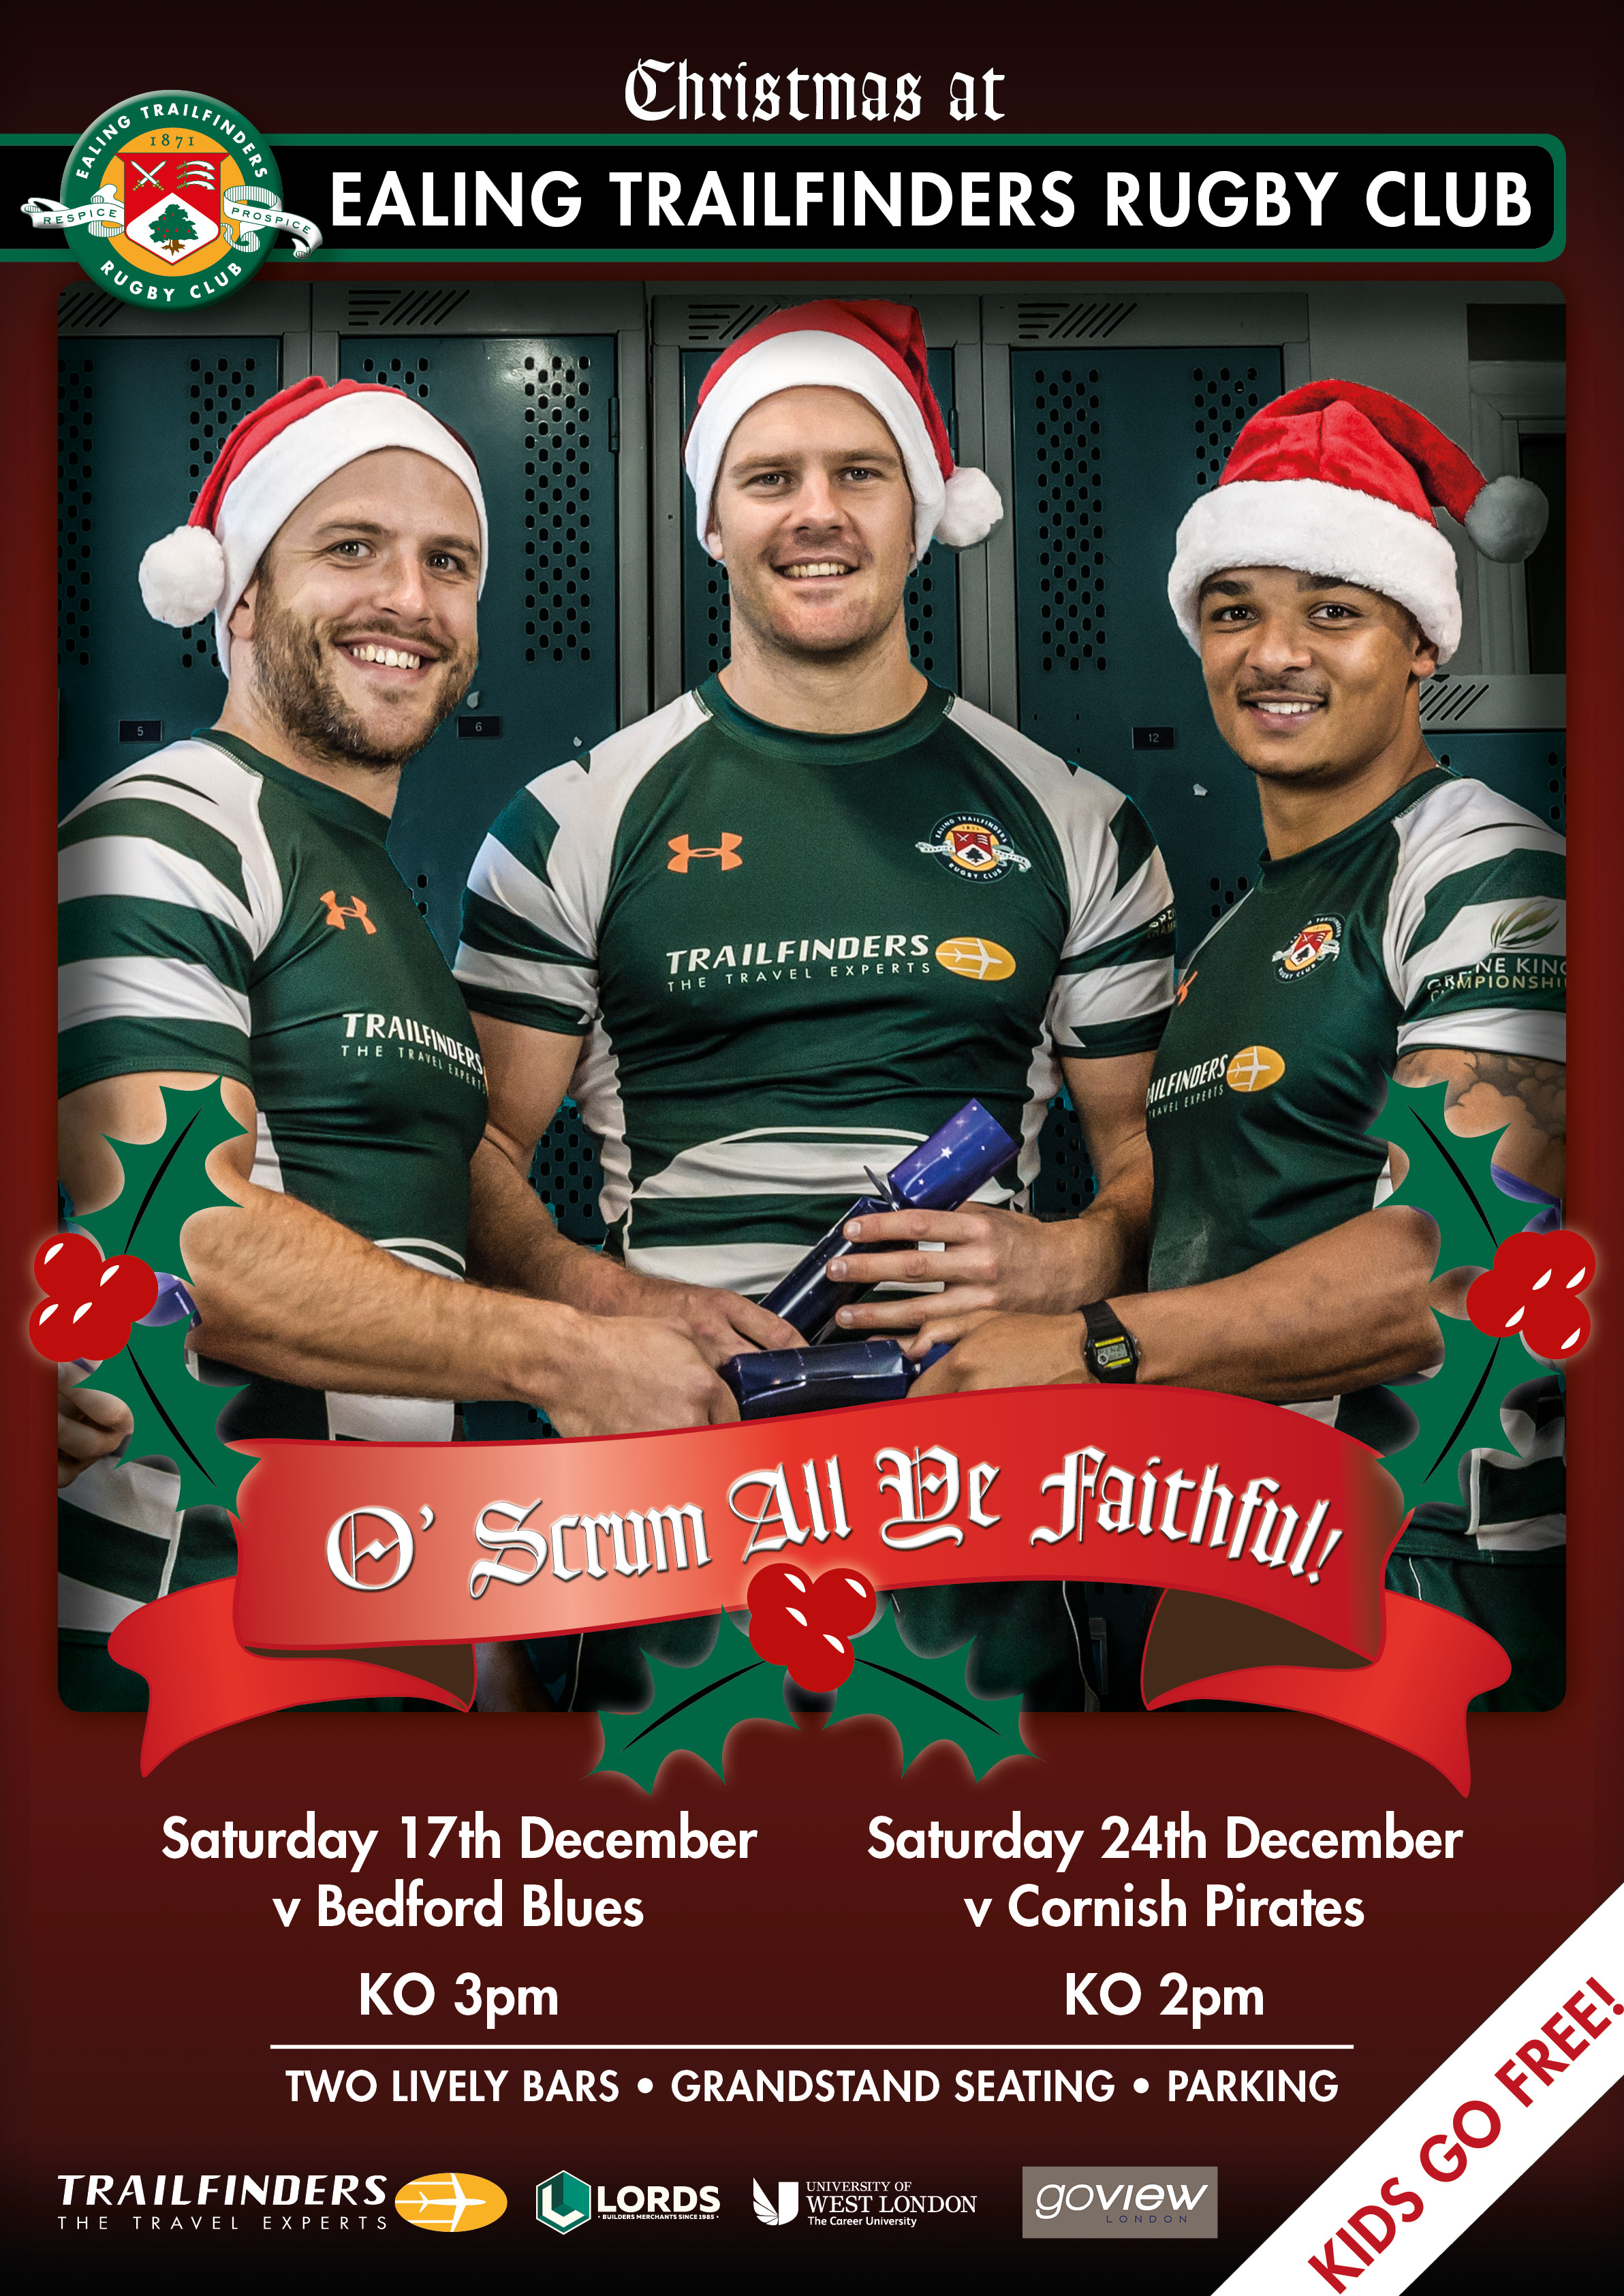 Christmas at Ealing Trailfinders Rugby Club